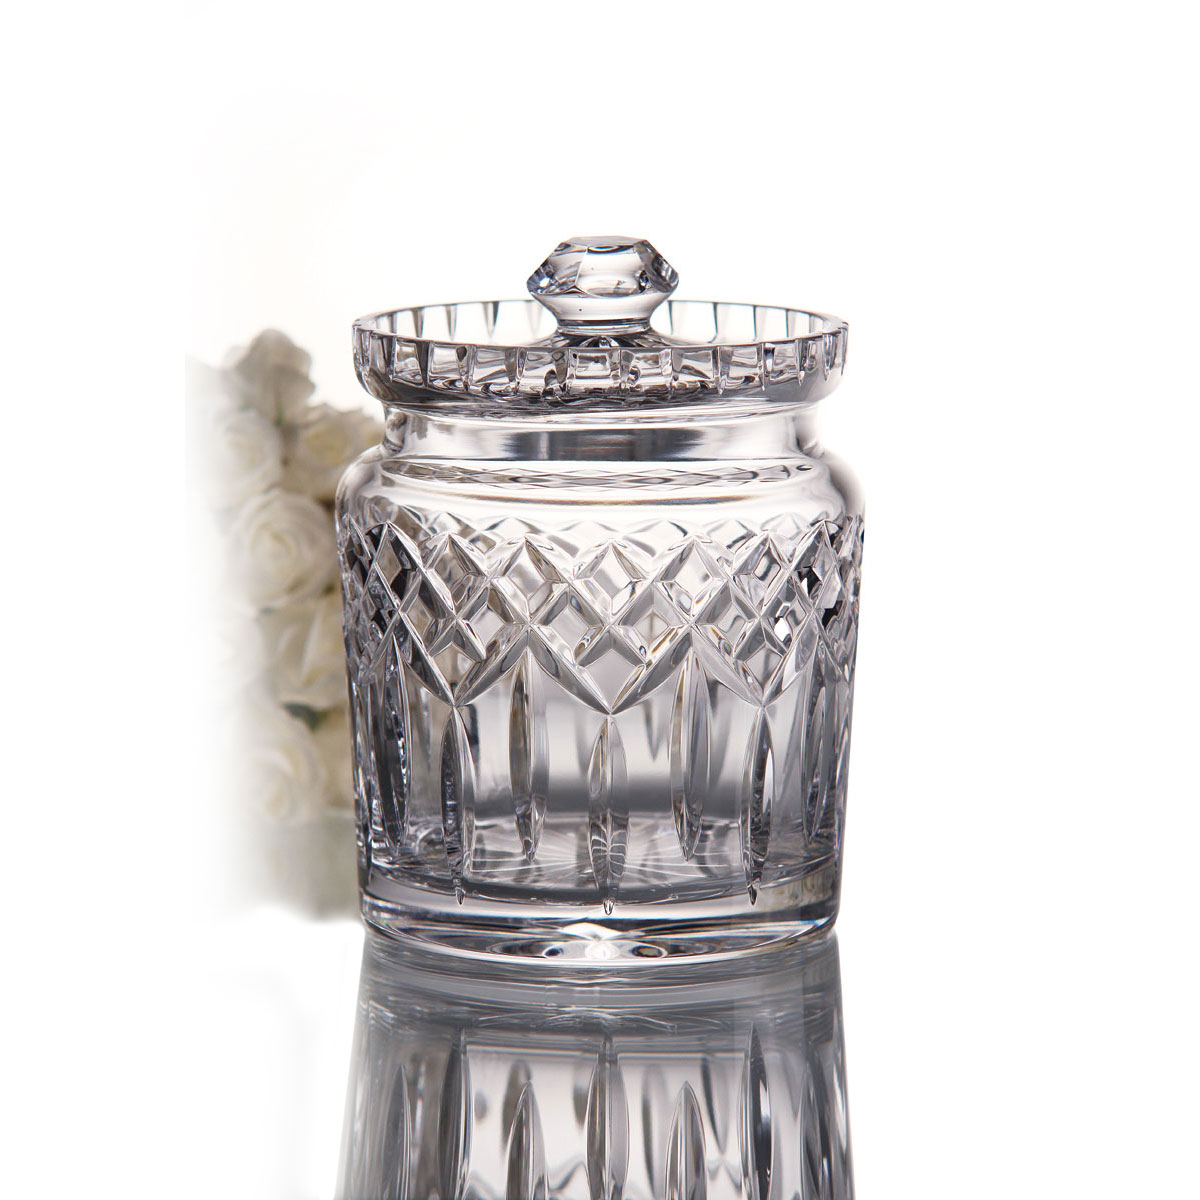 Waterford Lismore Crystal Biscuit Barrel with Lid